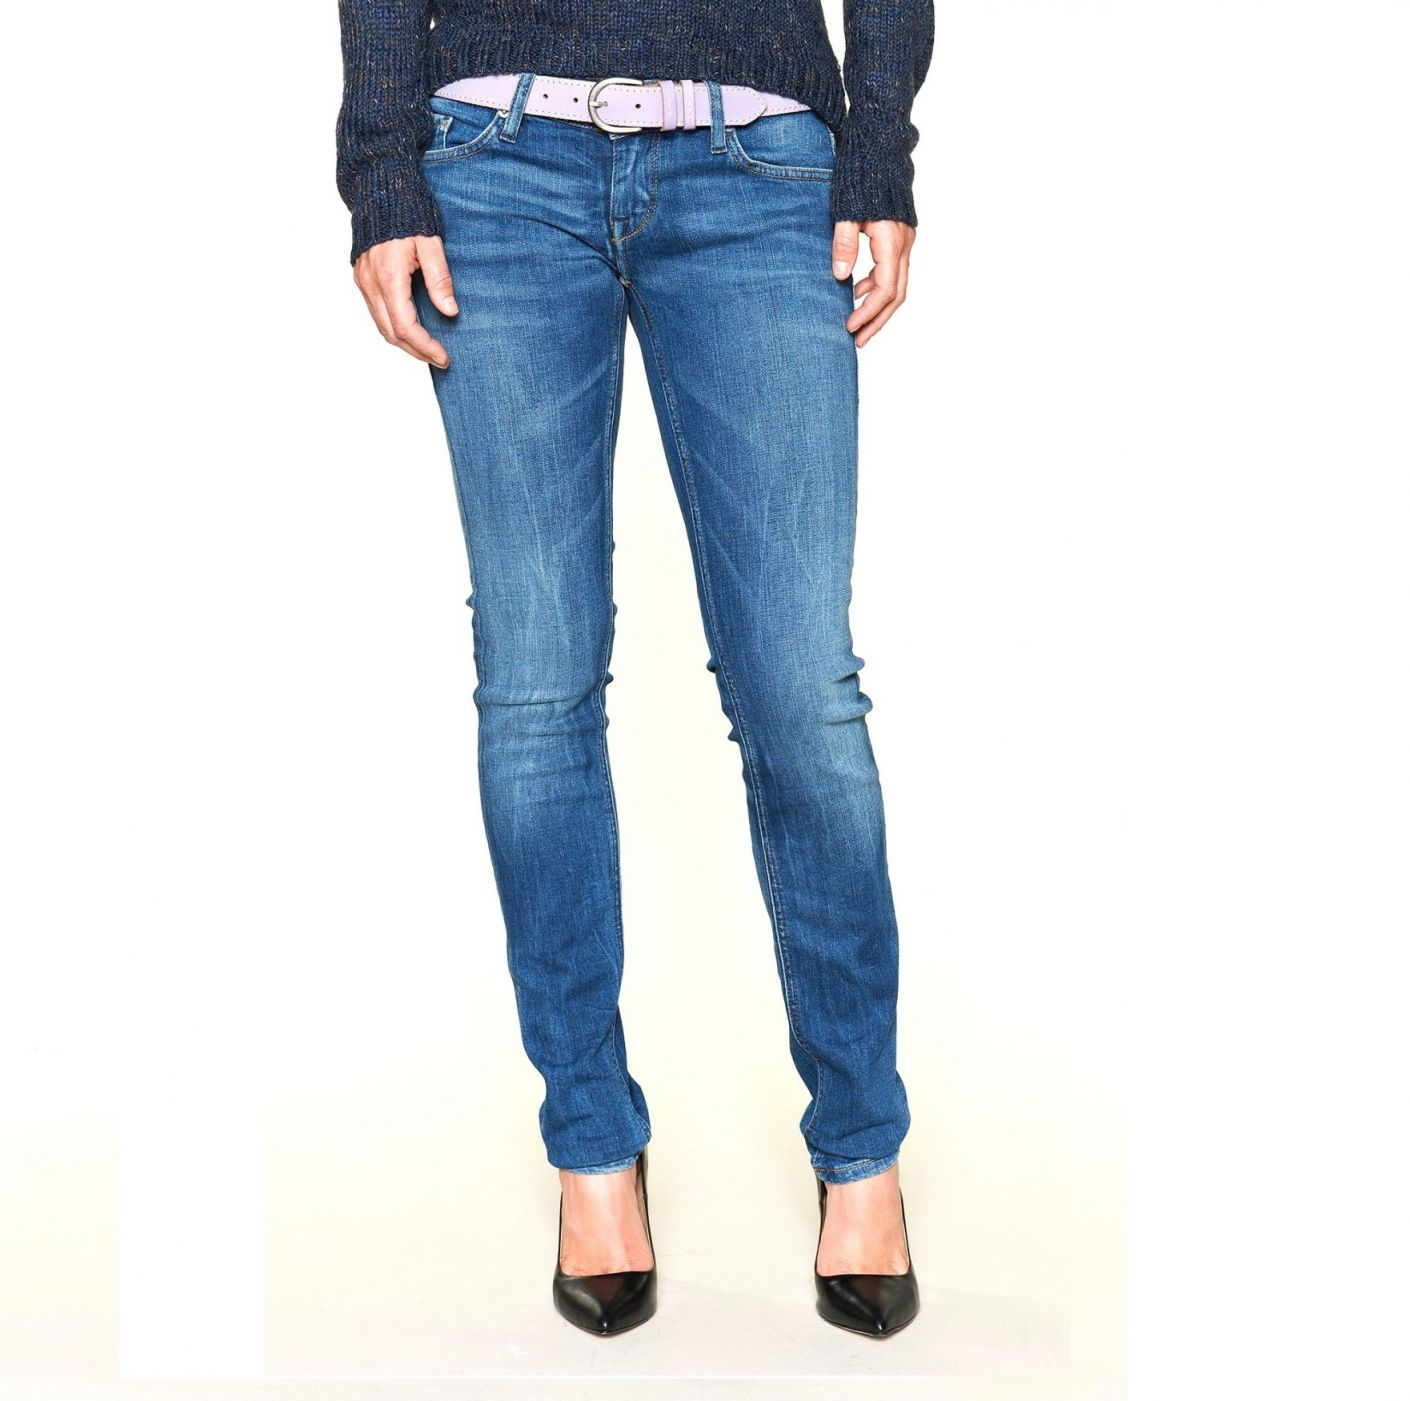 Mustang Jeans Gina 3588-5039-536 30-30